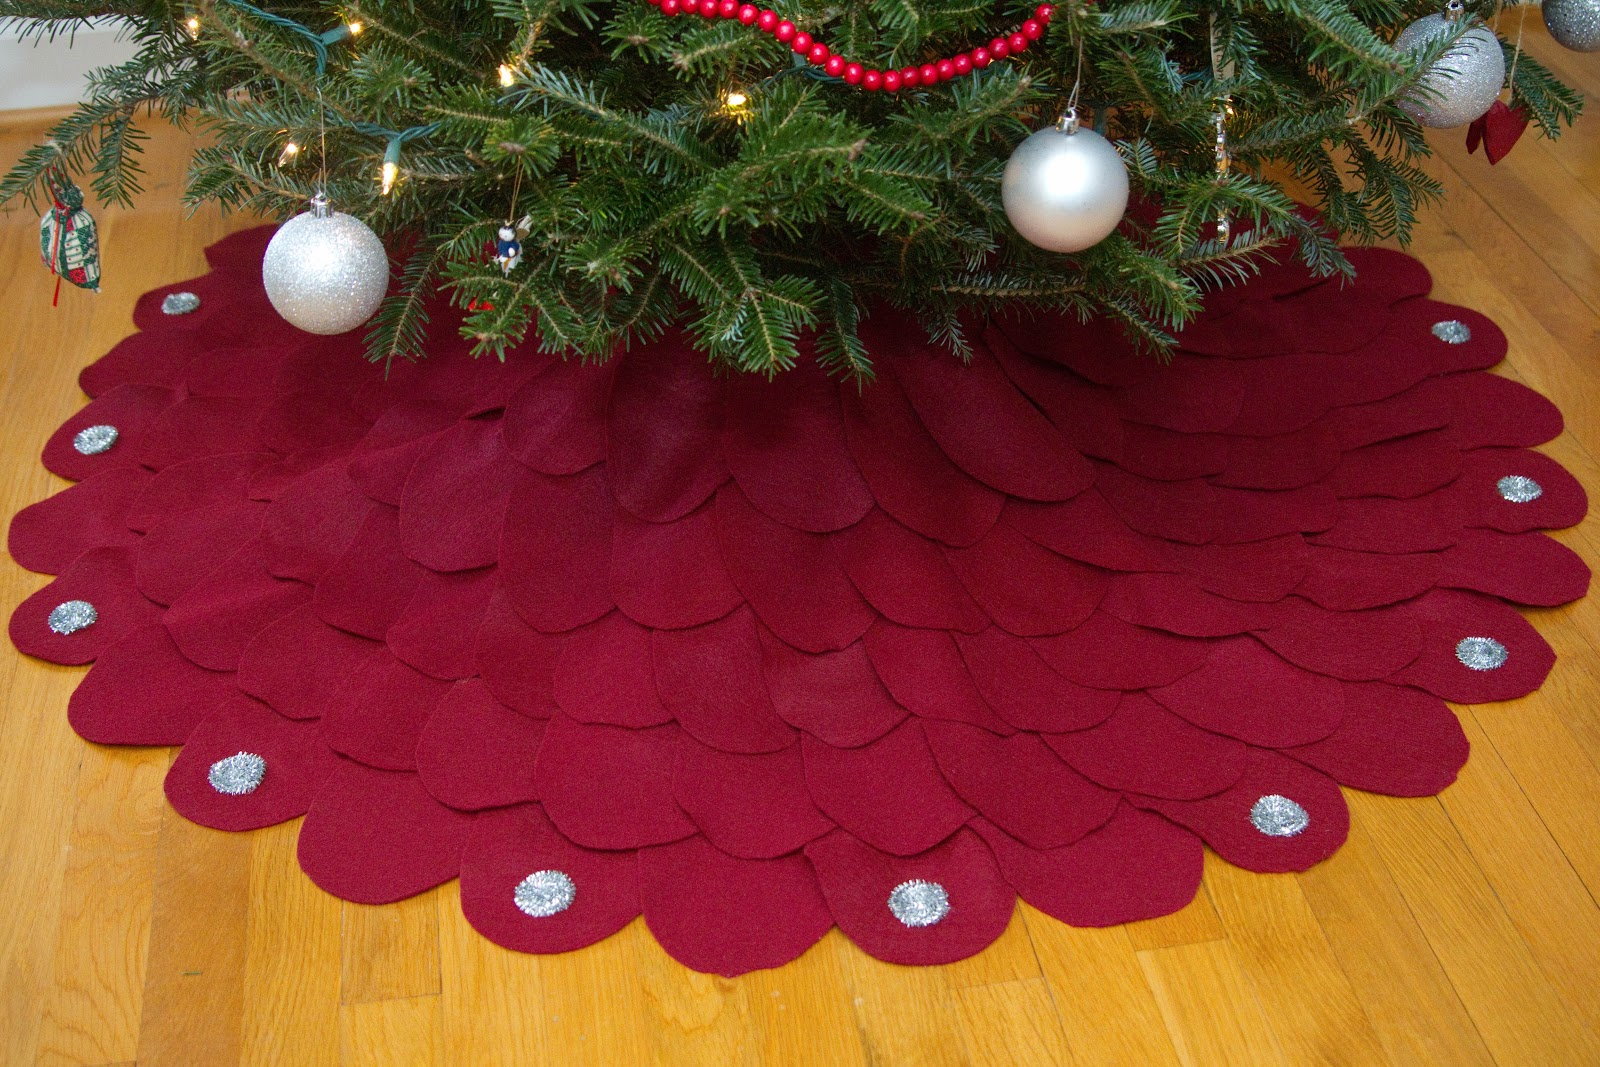 diy christmas tree skirt - Christmas Tree Skirt Pattern